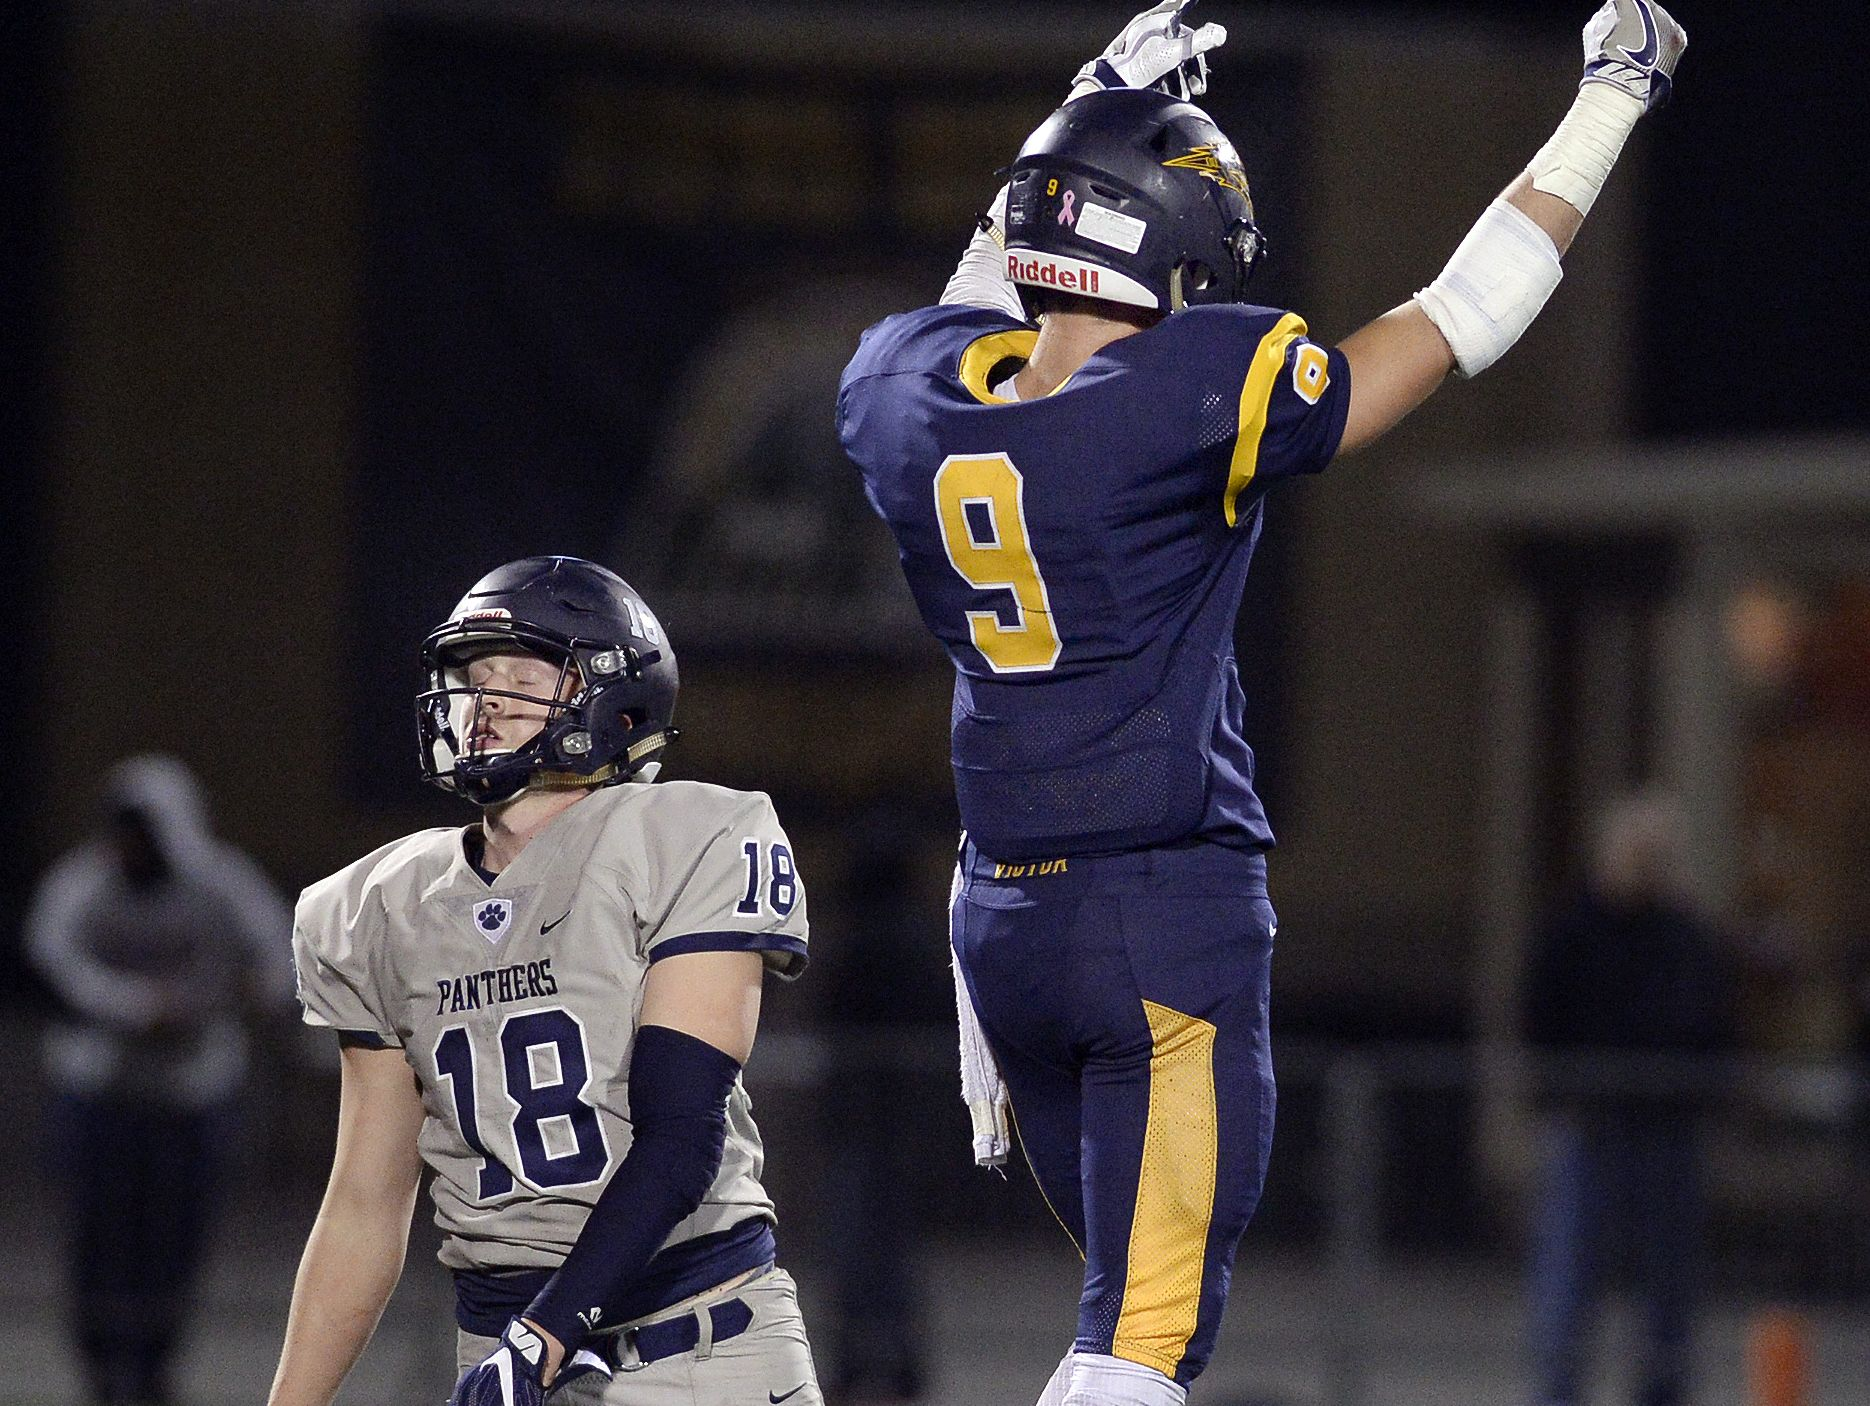 Victor's Andrew Russell (9) celebrates after stopping Pittsford's Colby Barker on fourth down.